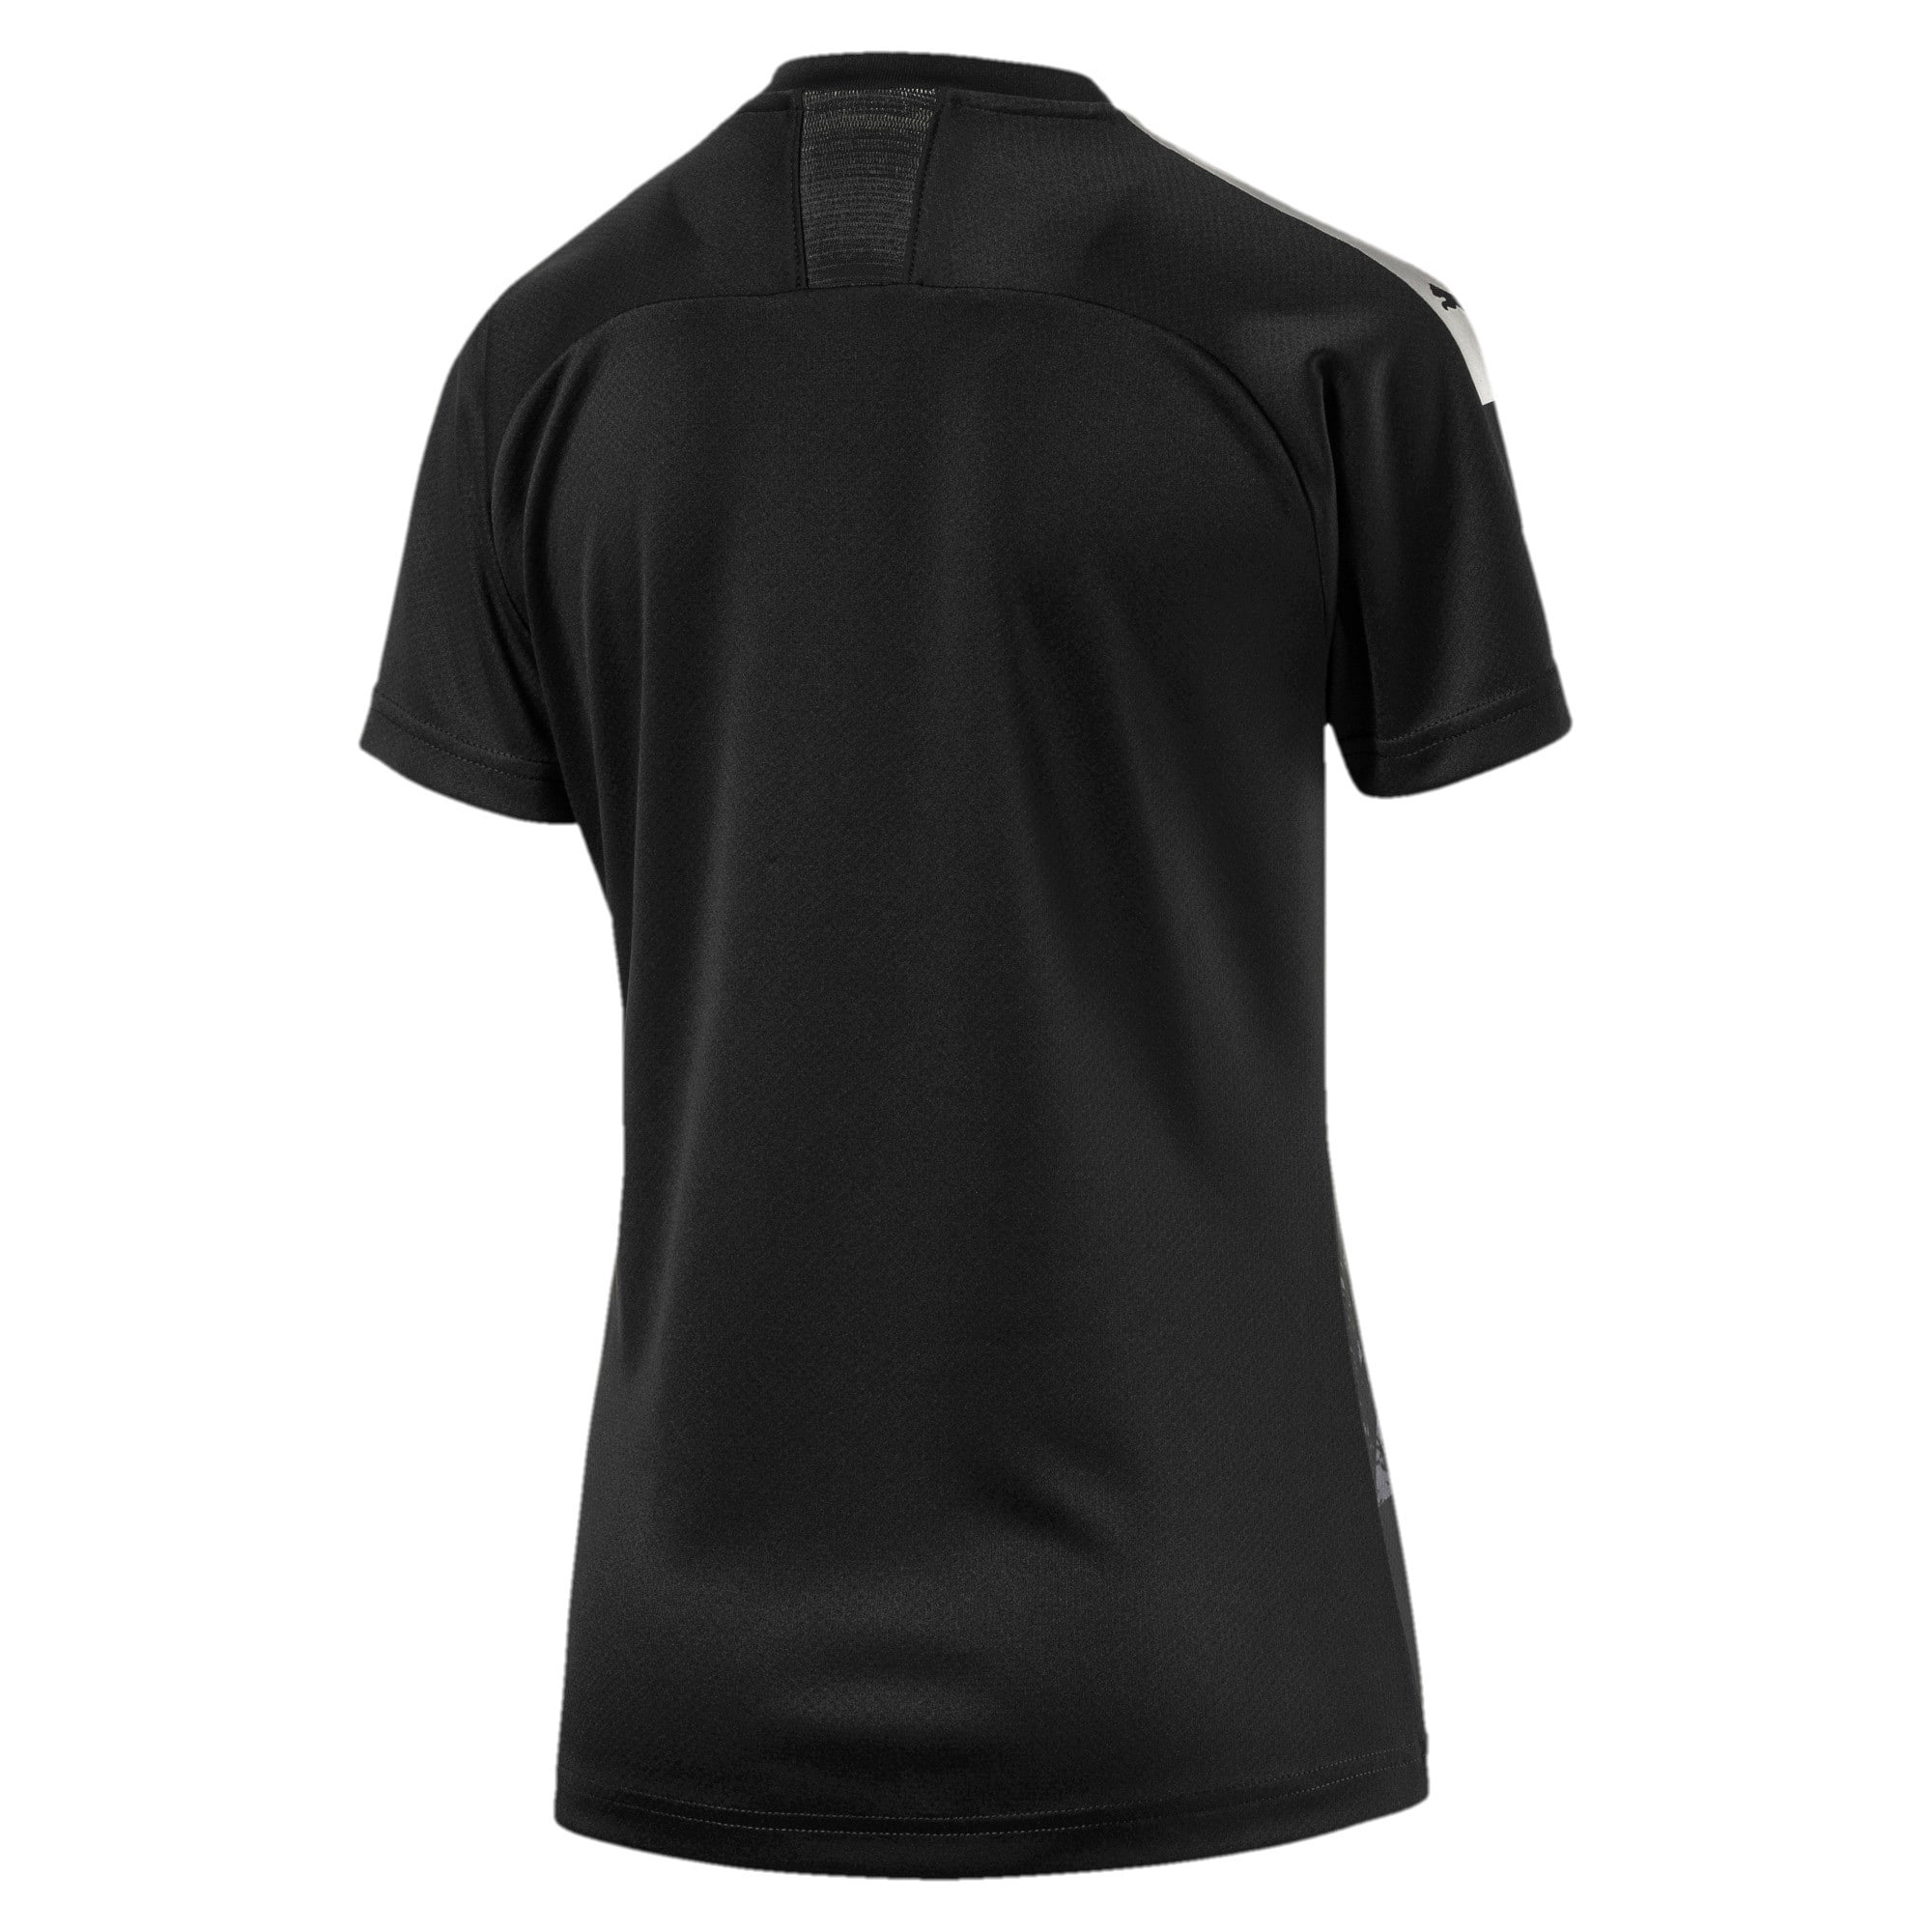 Thumbnail 2 of BVB Women's Away Replica Jersey, Puma Black, medium